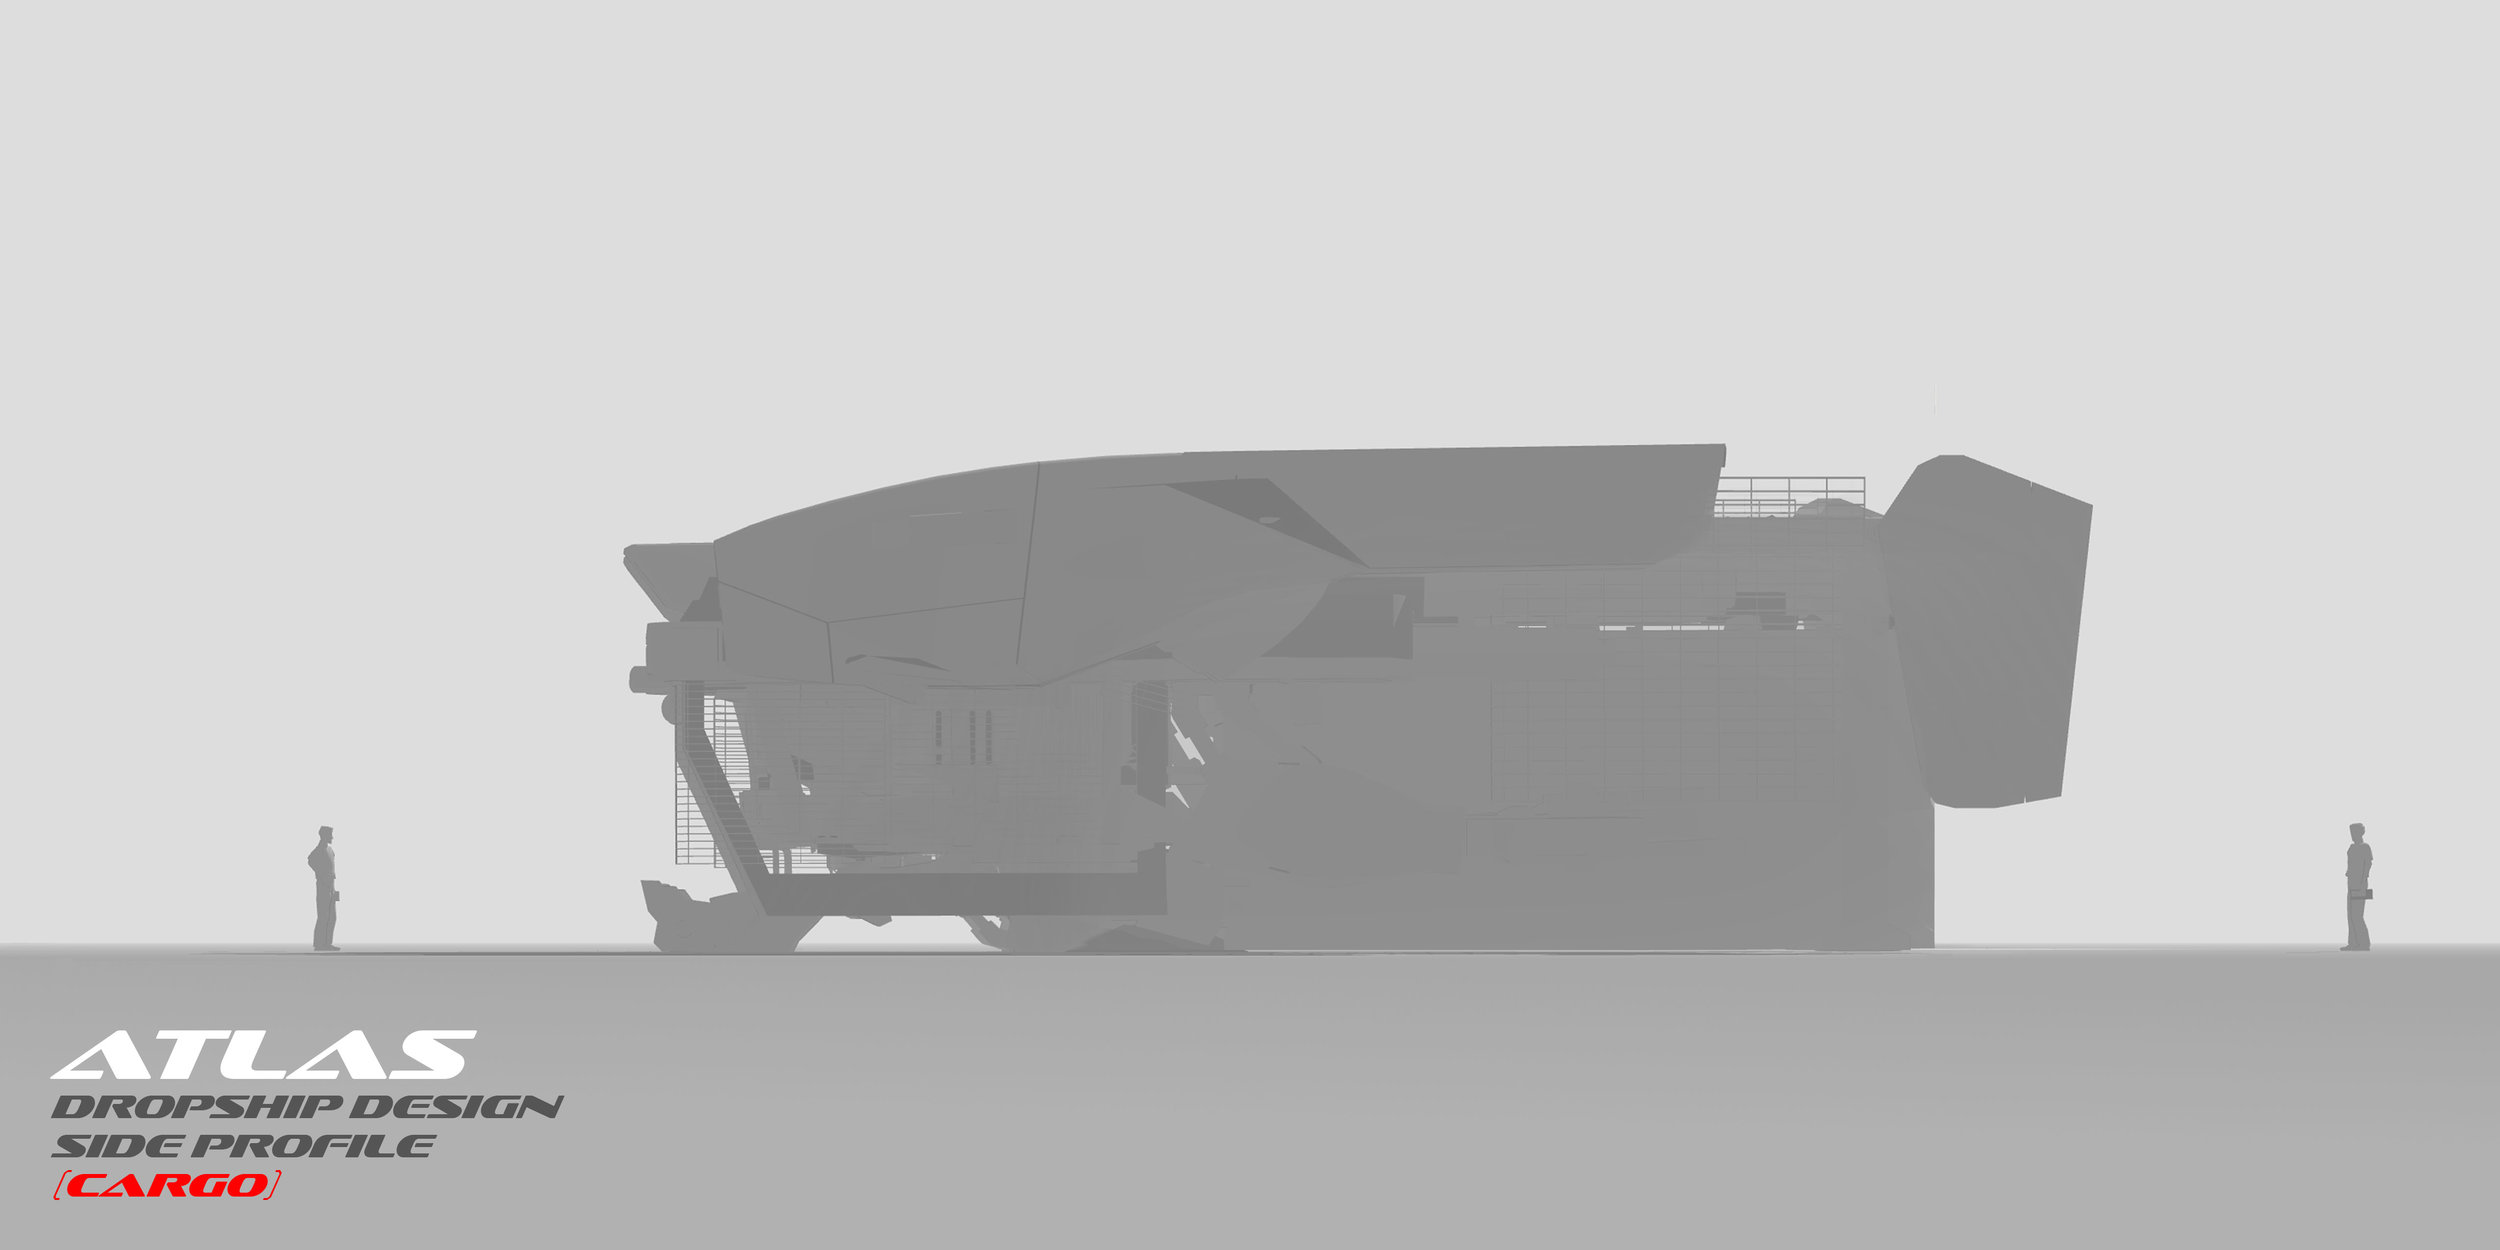 Atlas drop ship design side profile cargo.jpg